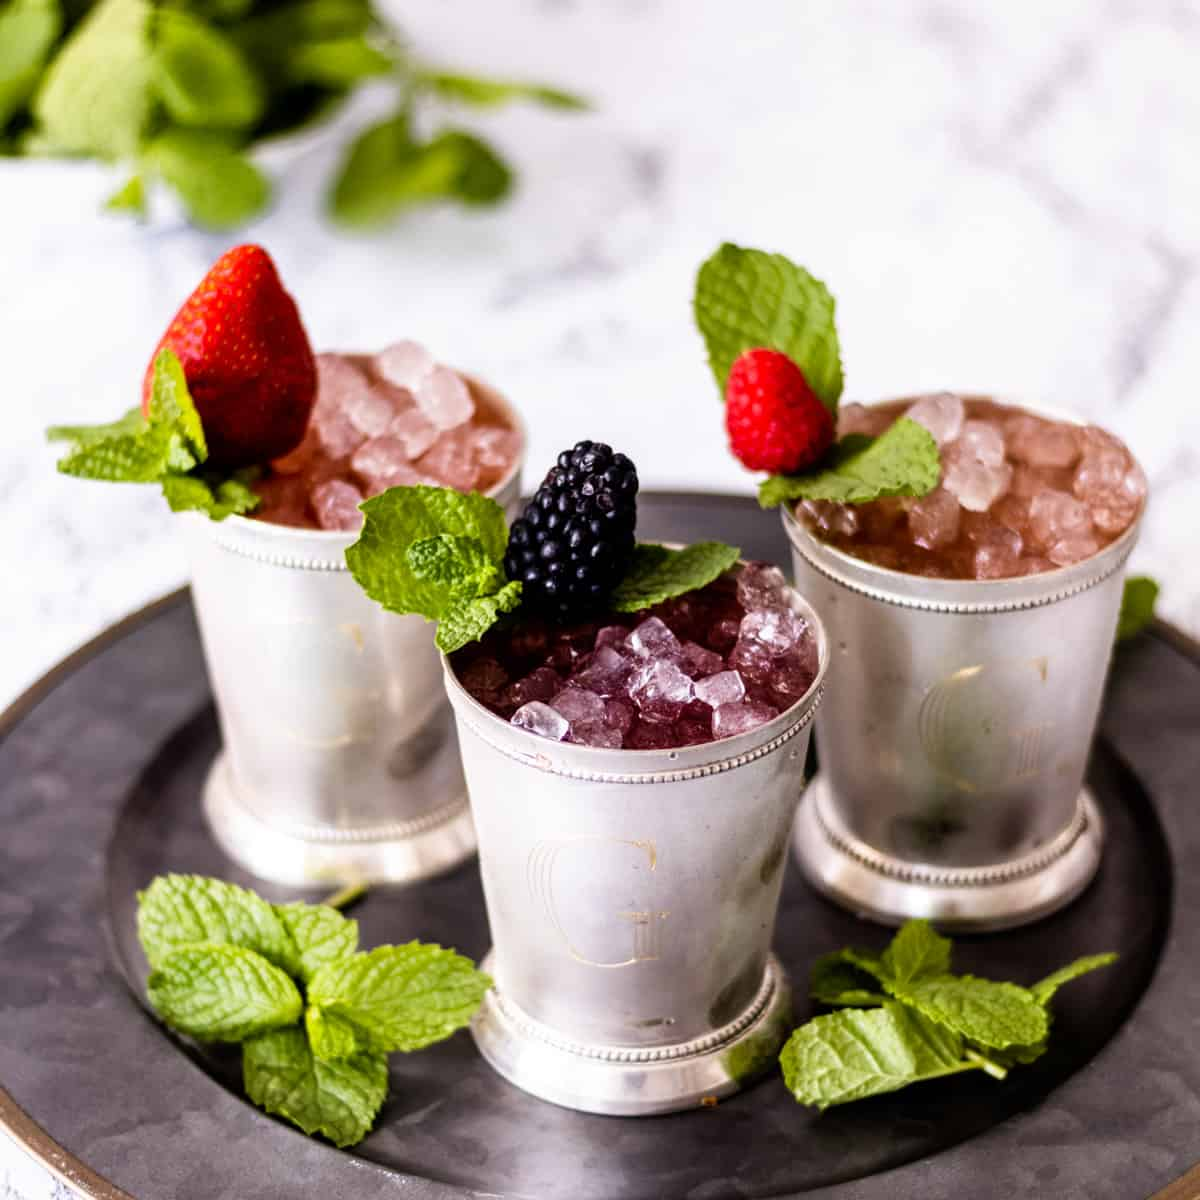 3 cups of berry mint juleps on a tray, with mint in the background.